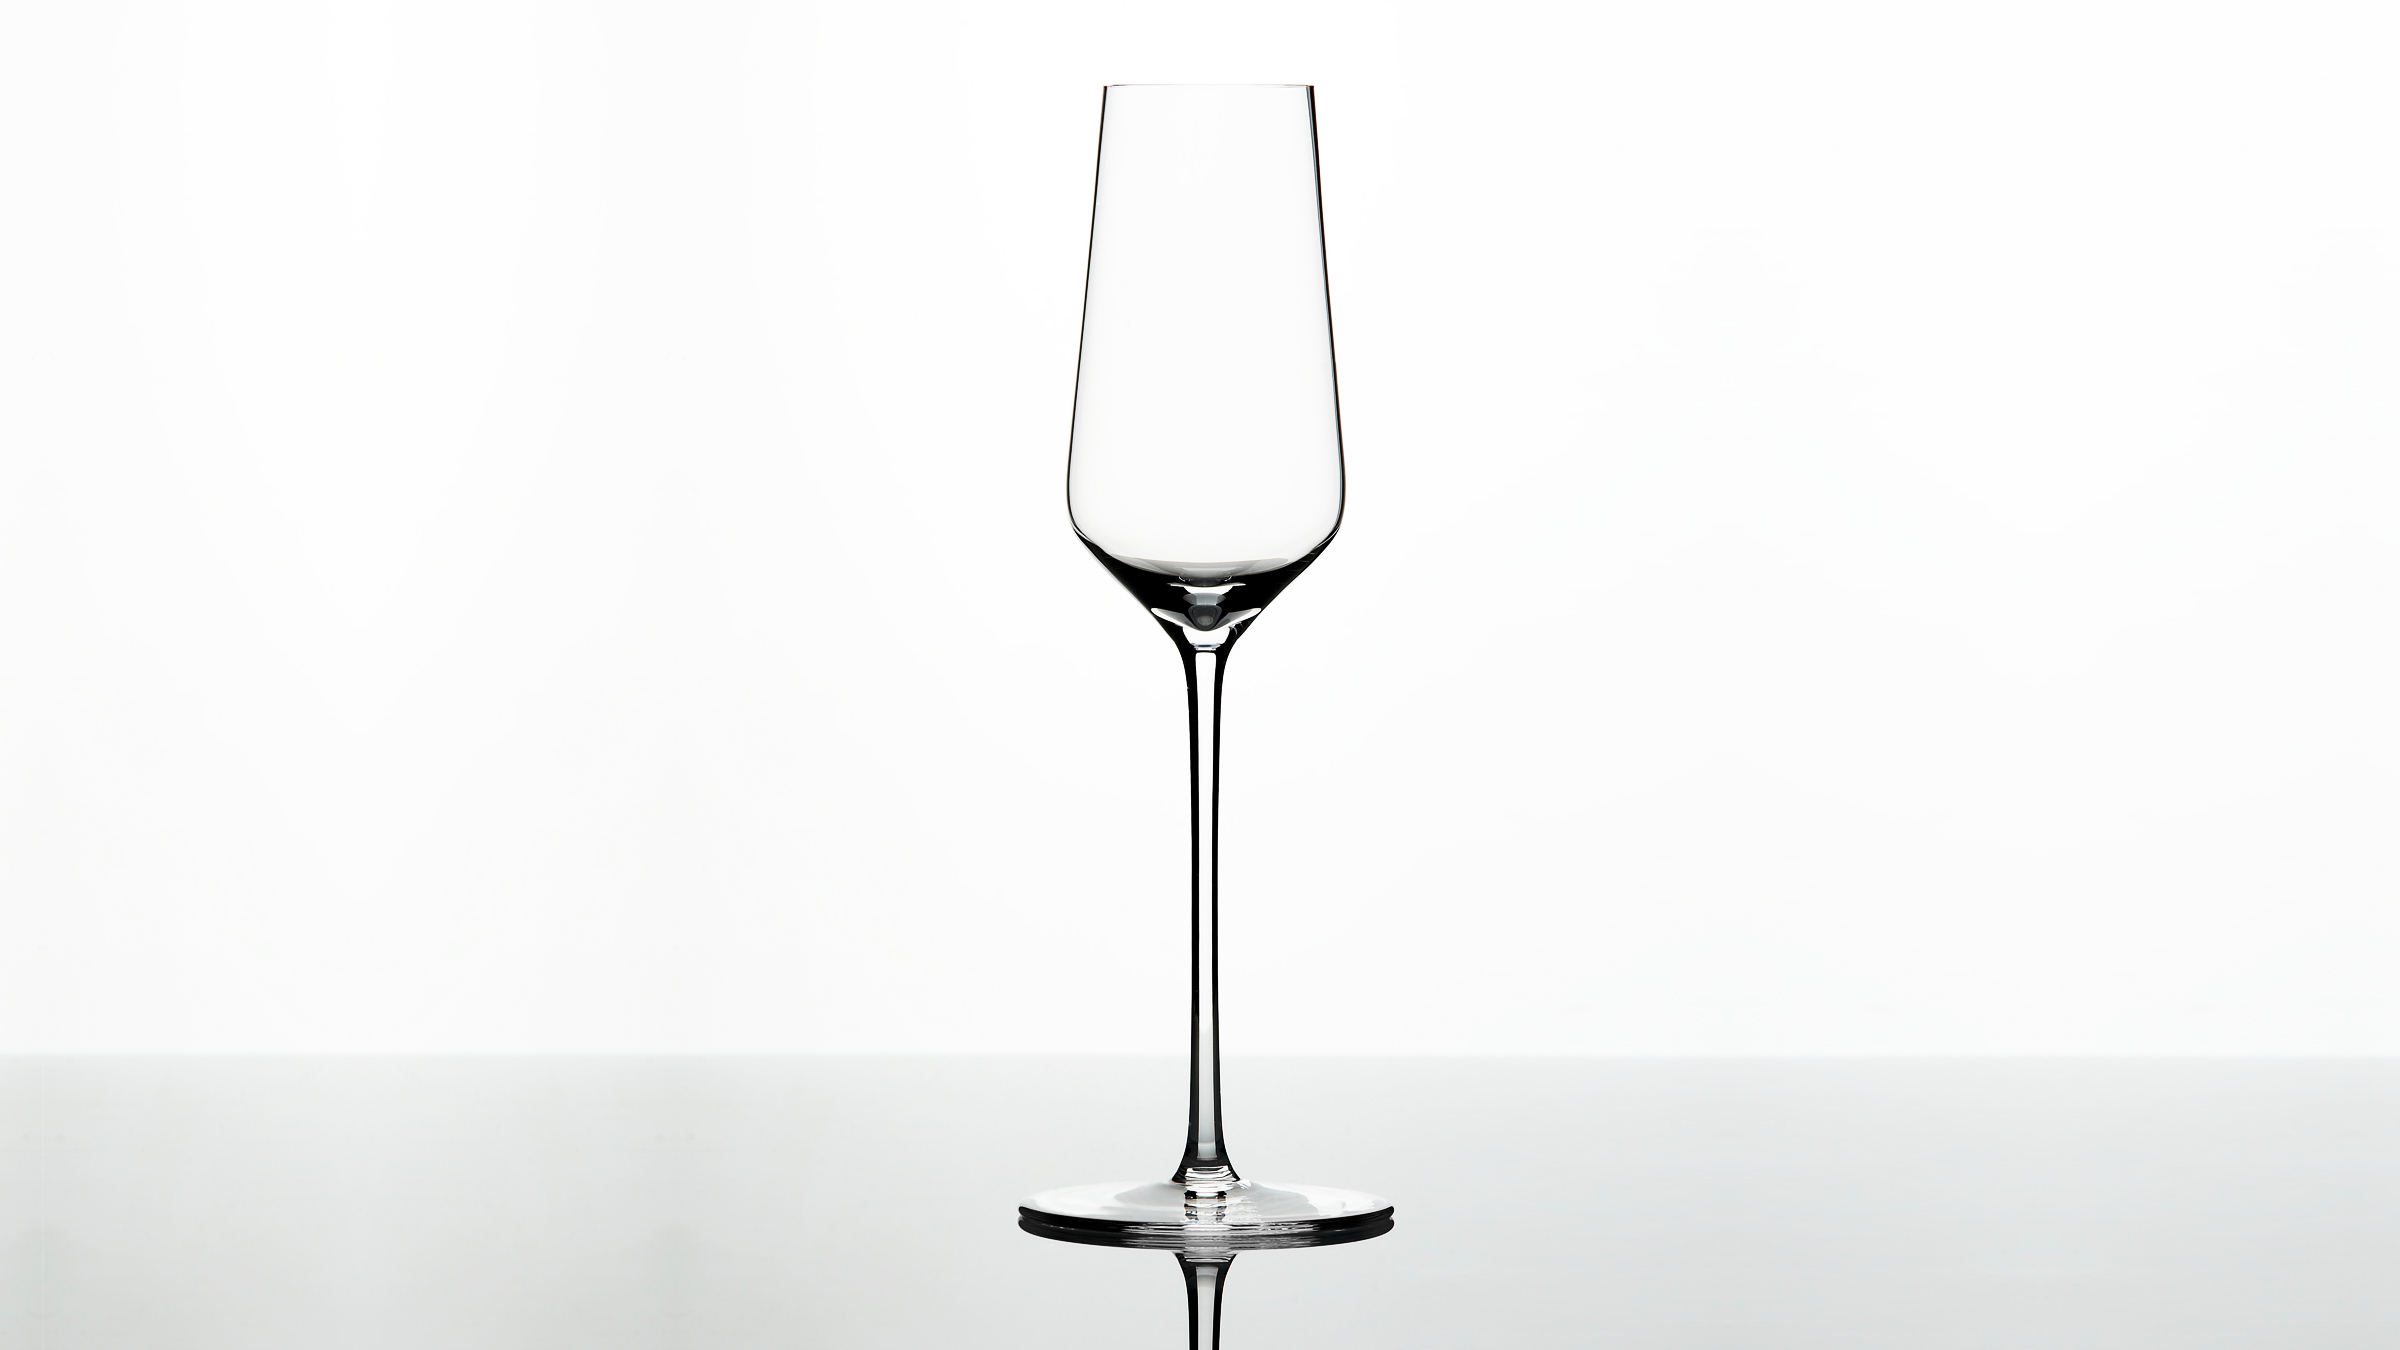 digestive-wine-glass